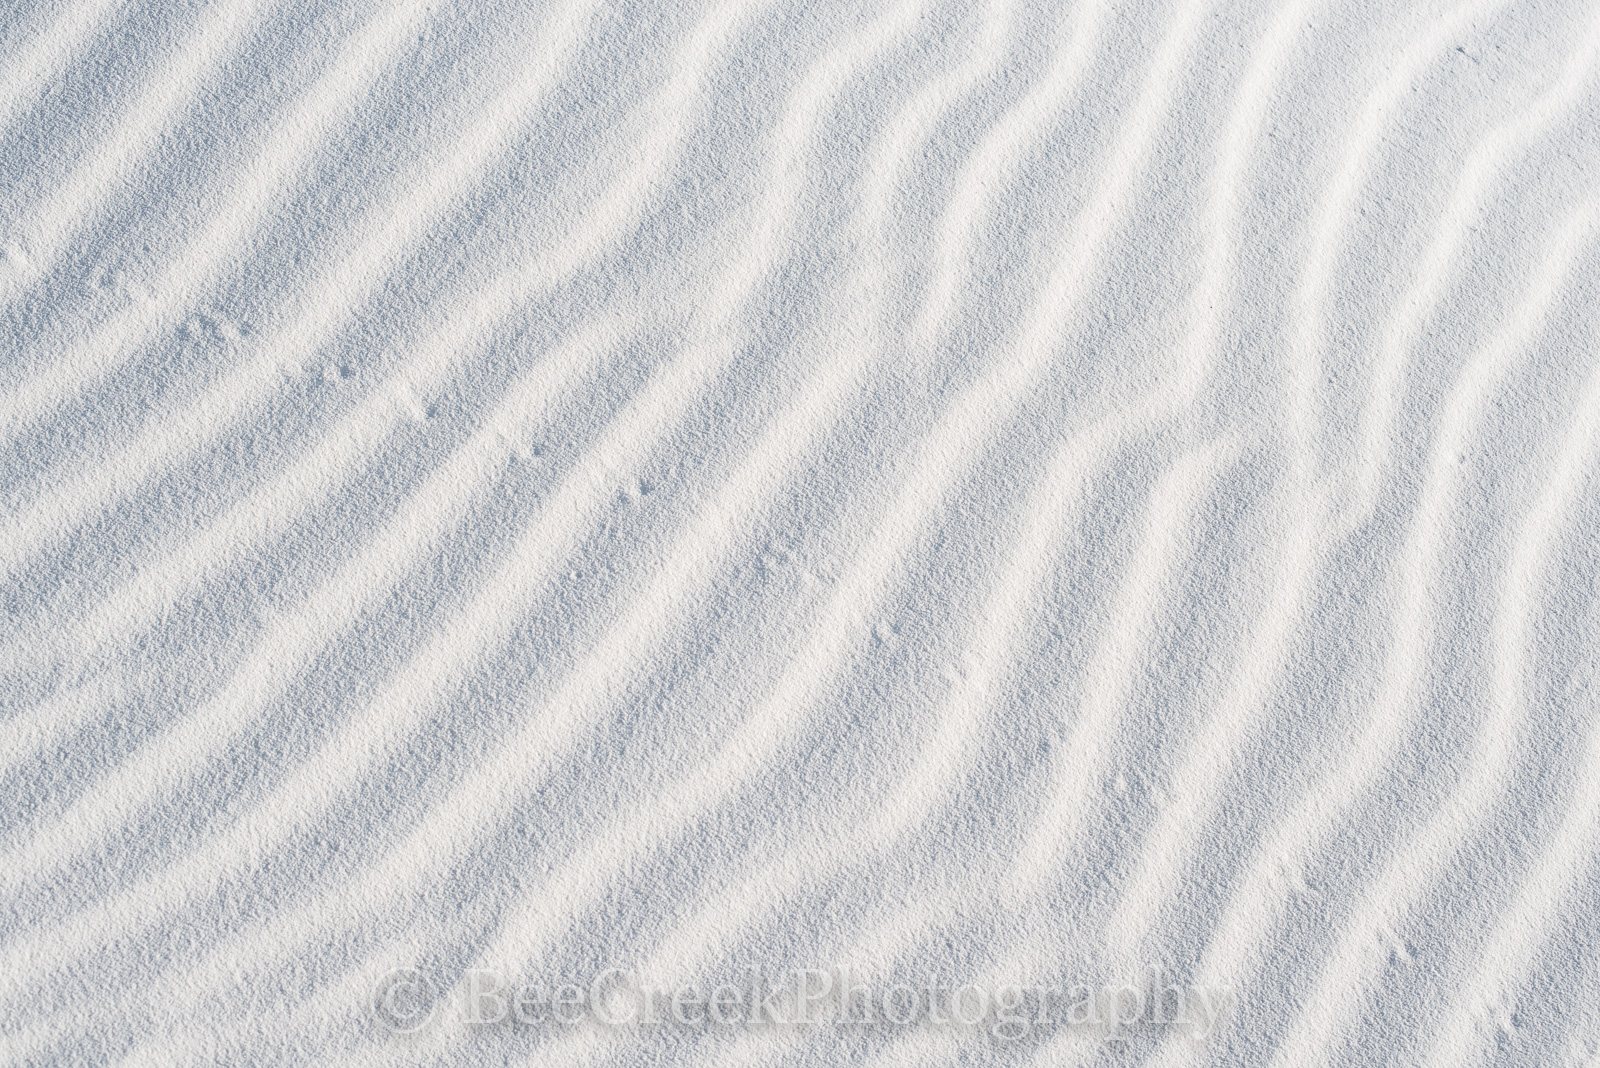 Alamagorda nm, New Mexico, New Mexico Parks, White Sand National Monument, White sands, beautiful photos of white sands, dunes, flow of sand, gypsum, images of White Sands, magnificent white sand dune, photo